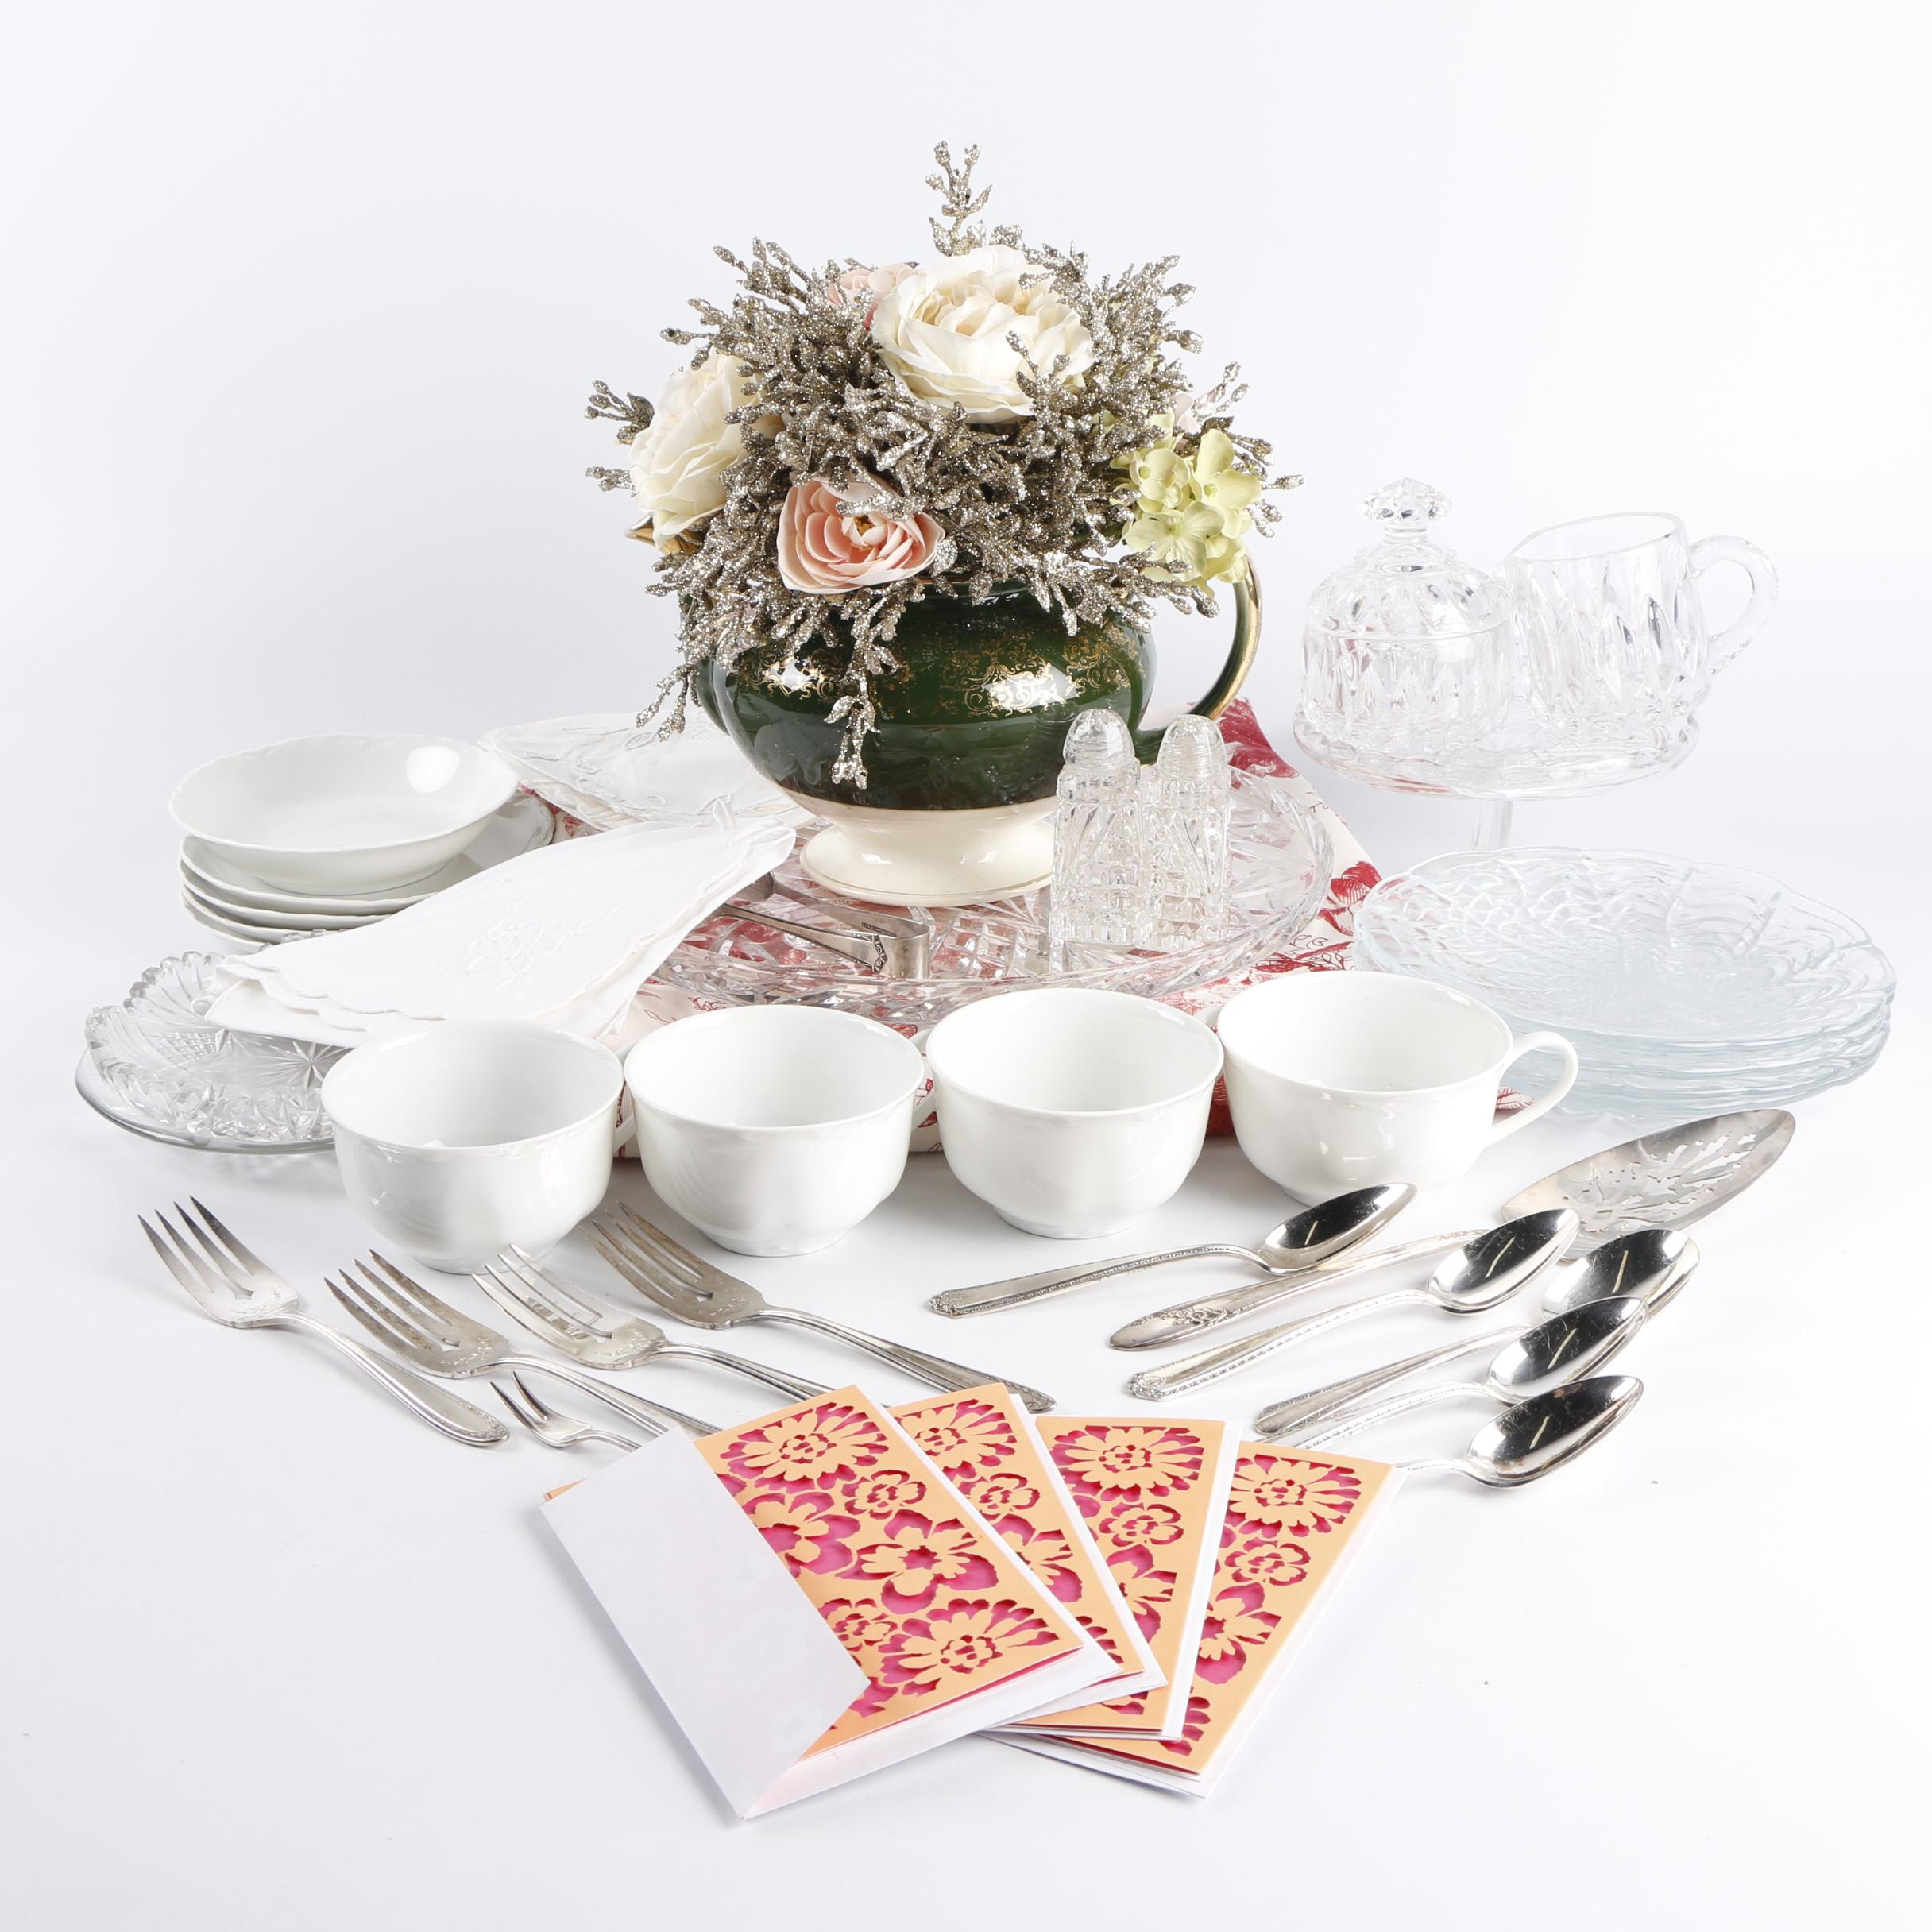 Ceramic and Glass Tableware with Flatware and Floral Centerpiece